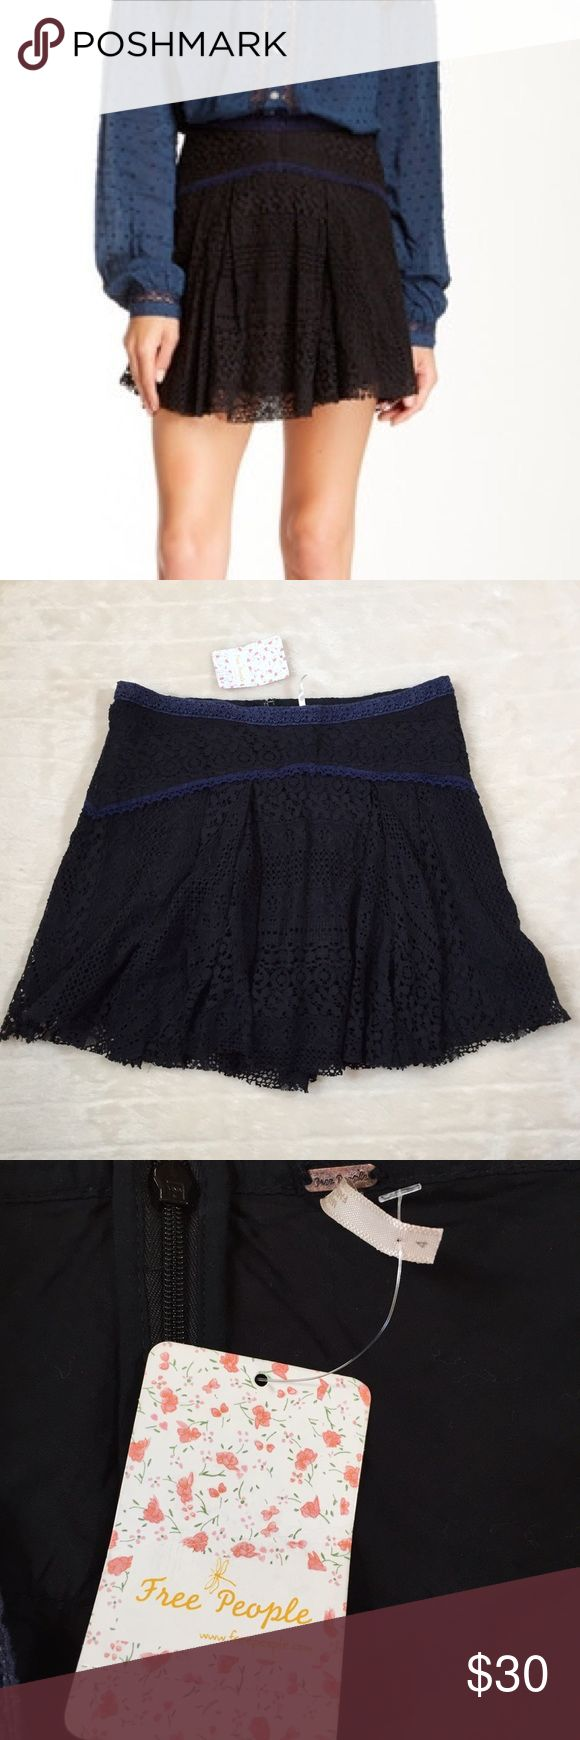 """NWT Free People Black Apple of my Eye Skirt Brand new with tags. Crochet lace over lining. Zip up back. ⭐️Waist 30.5 ⭐️ Waist to hem 15.5"""" ⭐️ Shell 59% cotton 25% nylon 15% rayon 1% poly ⭐️ Lining 100% cotton Free People Skirts Mini"""